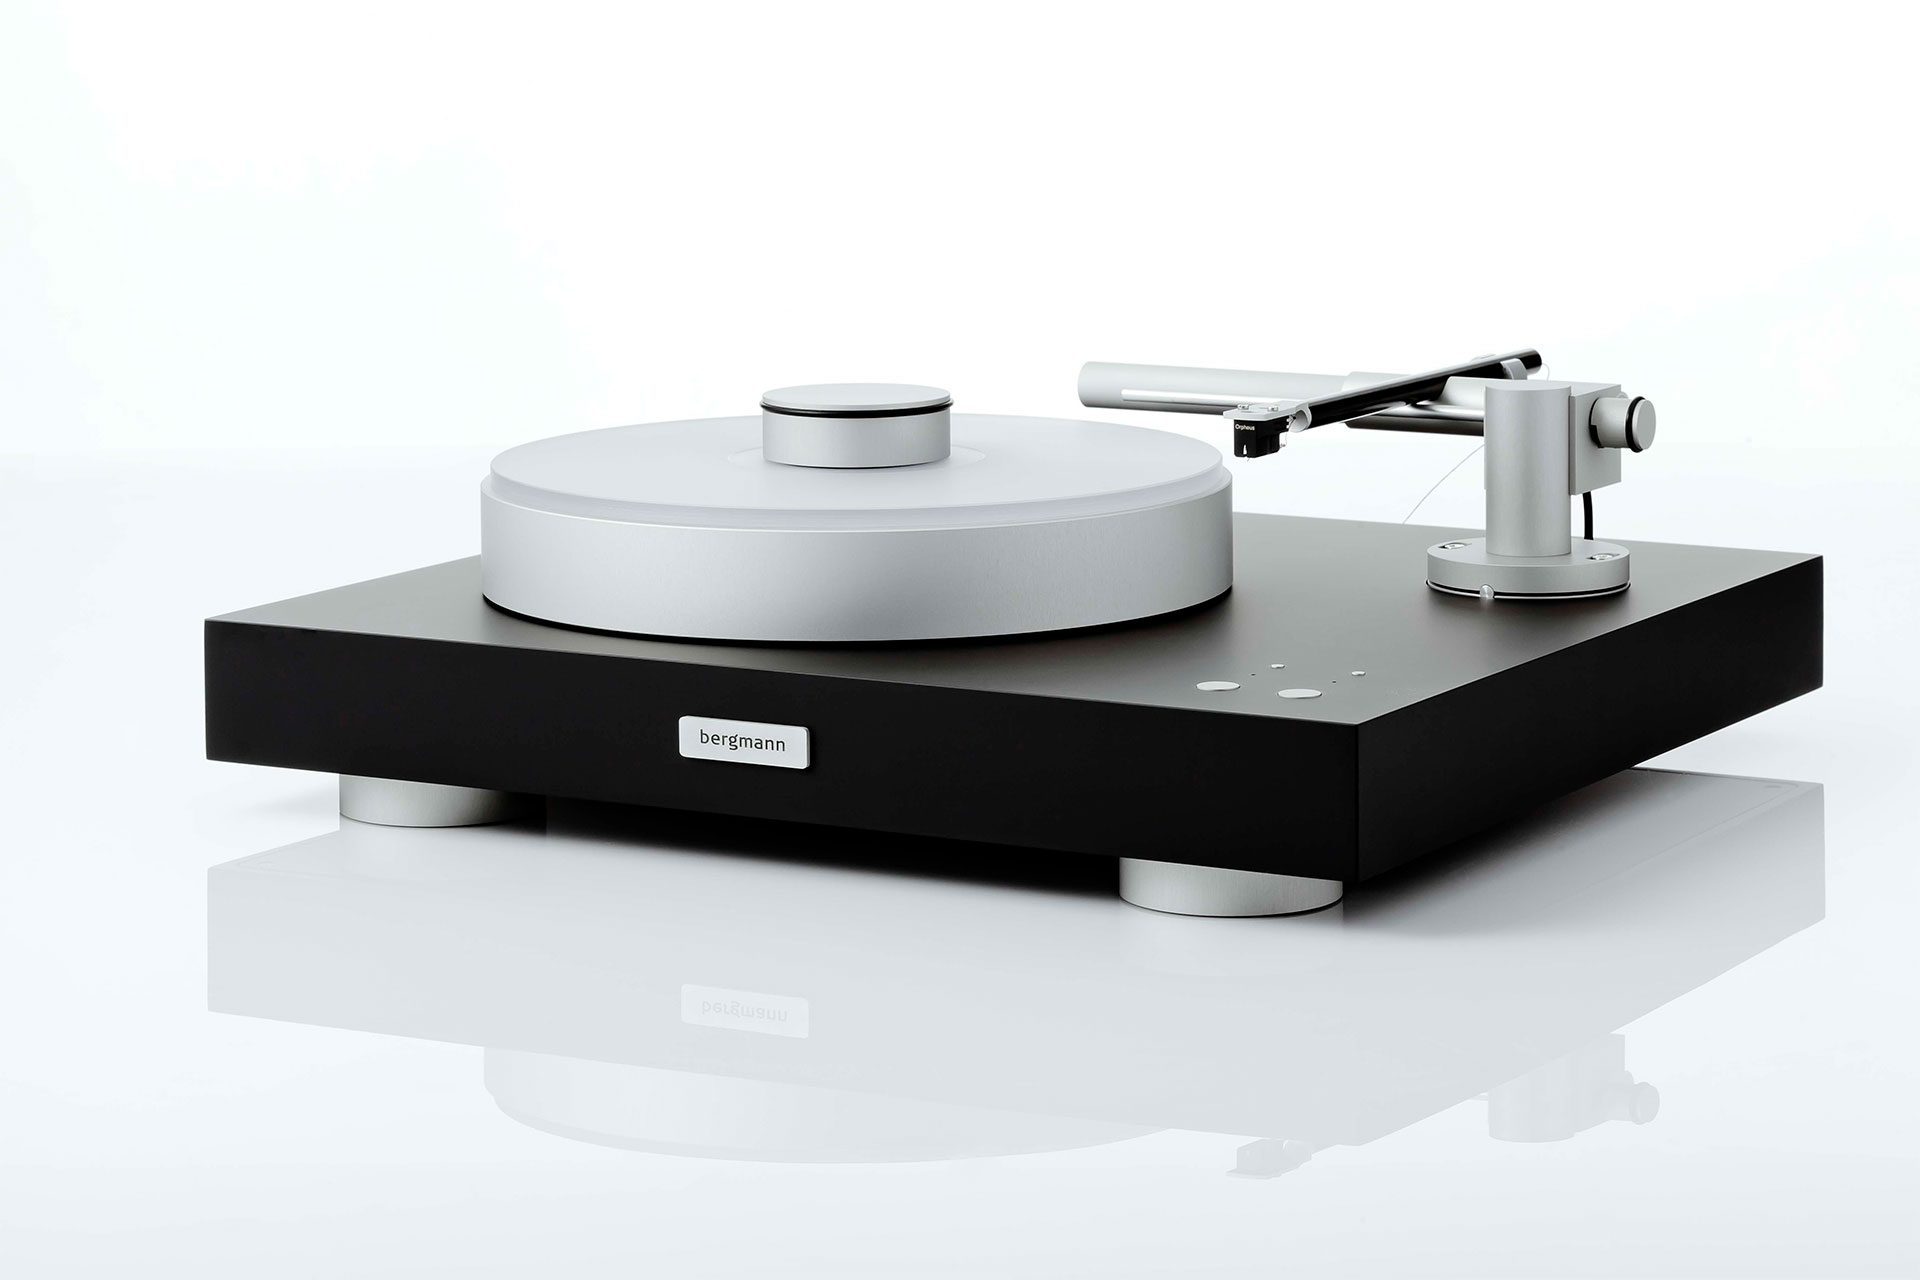 Magne turntable and tonearm black edition design by BergmannAudio